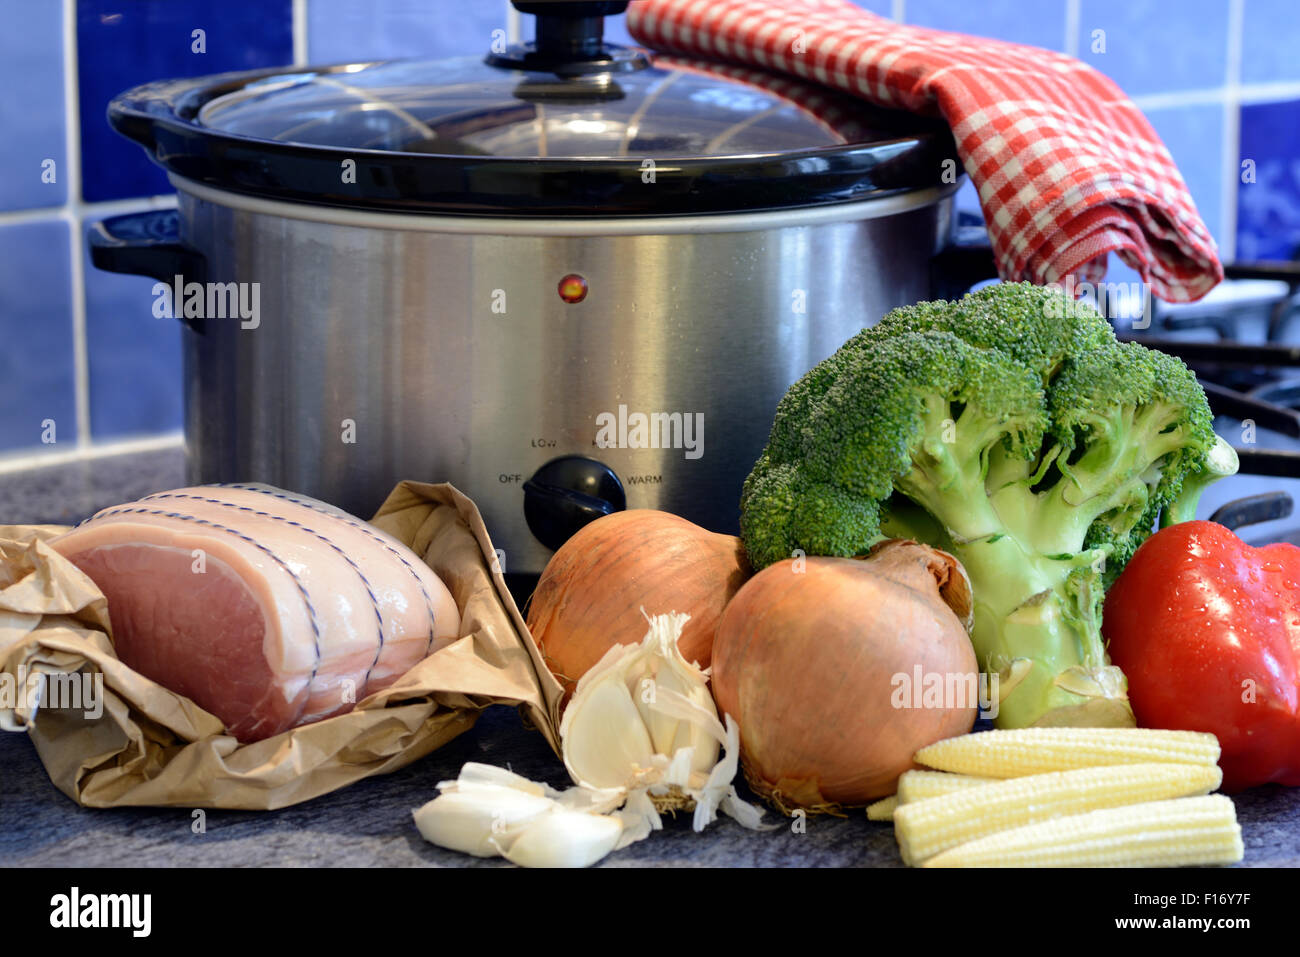 Fresh whole ingredients in front of a slow cooker pot - Stock Image